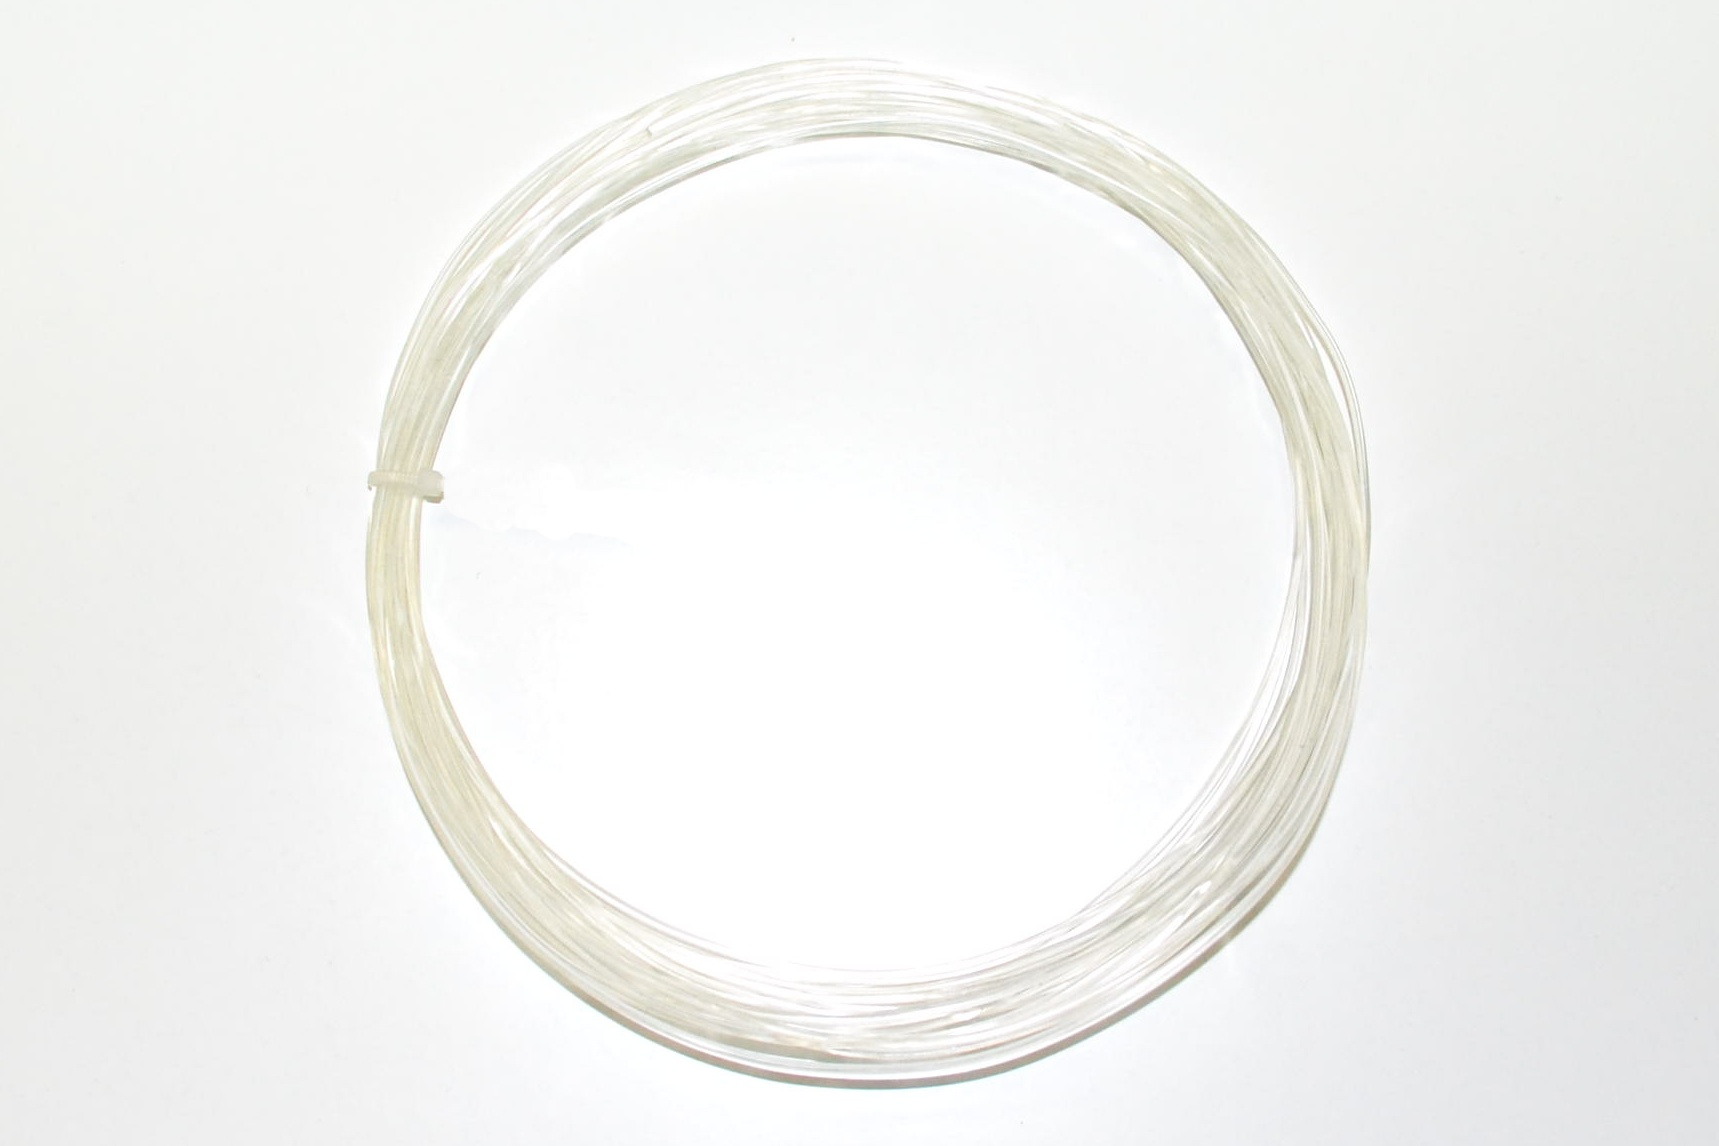 P-GLASS filament průsvitný 1,75 mm 10 m